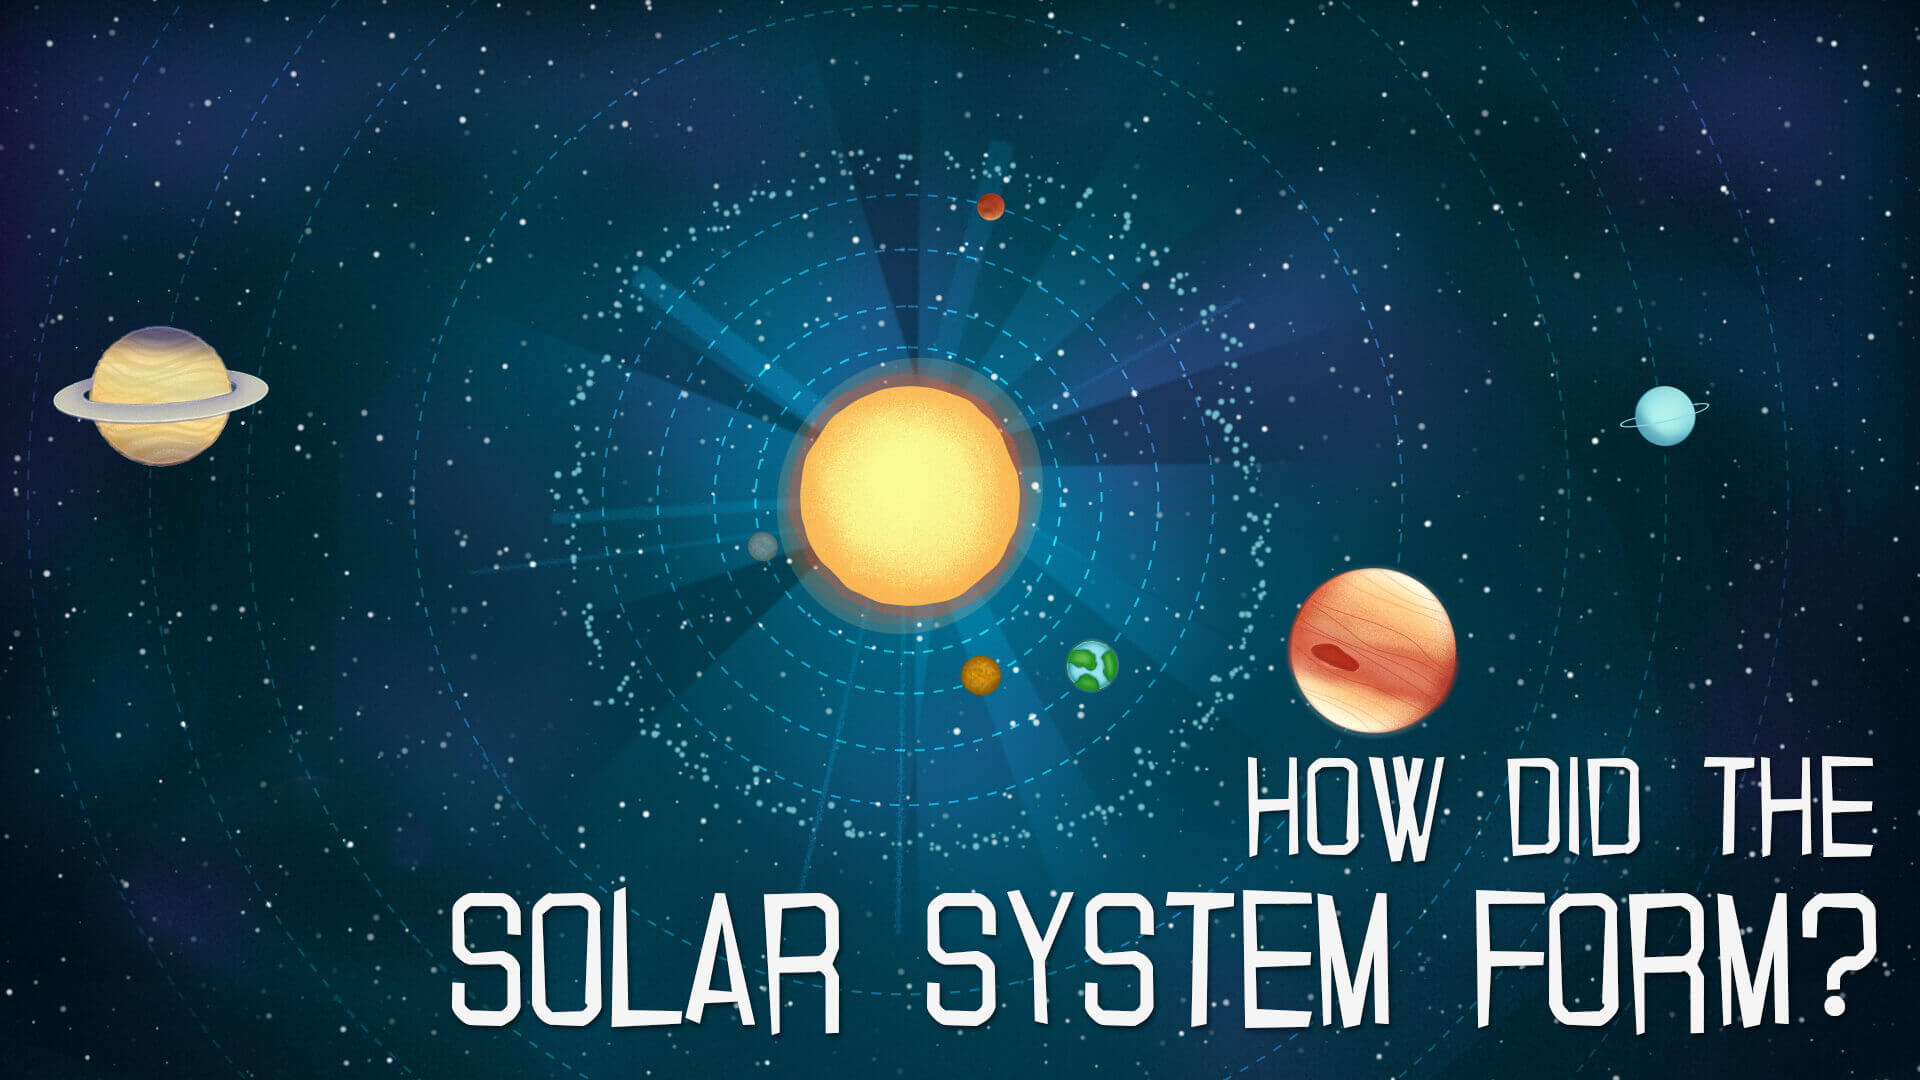 Educational animation films for children for Royal Observatory Greenwich - How did the Solar System form